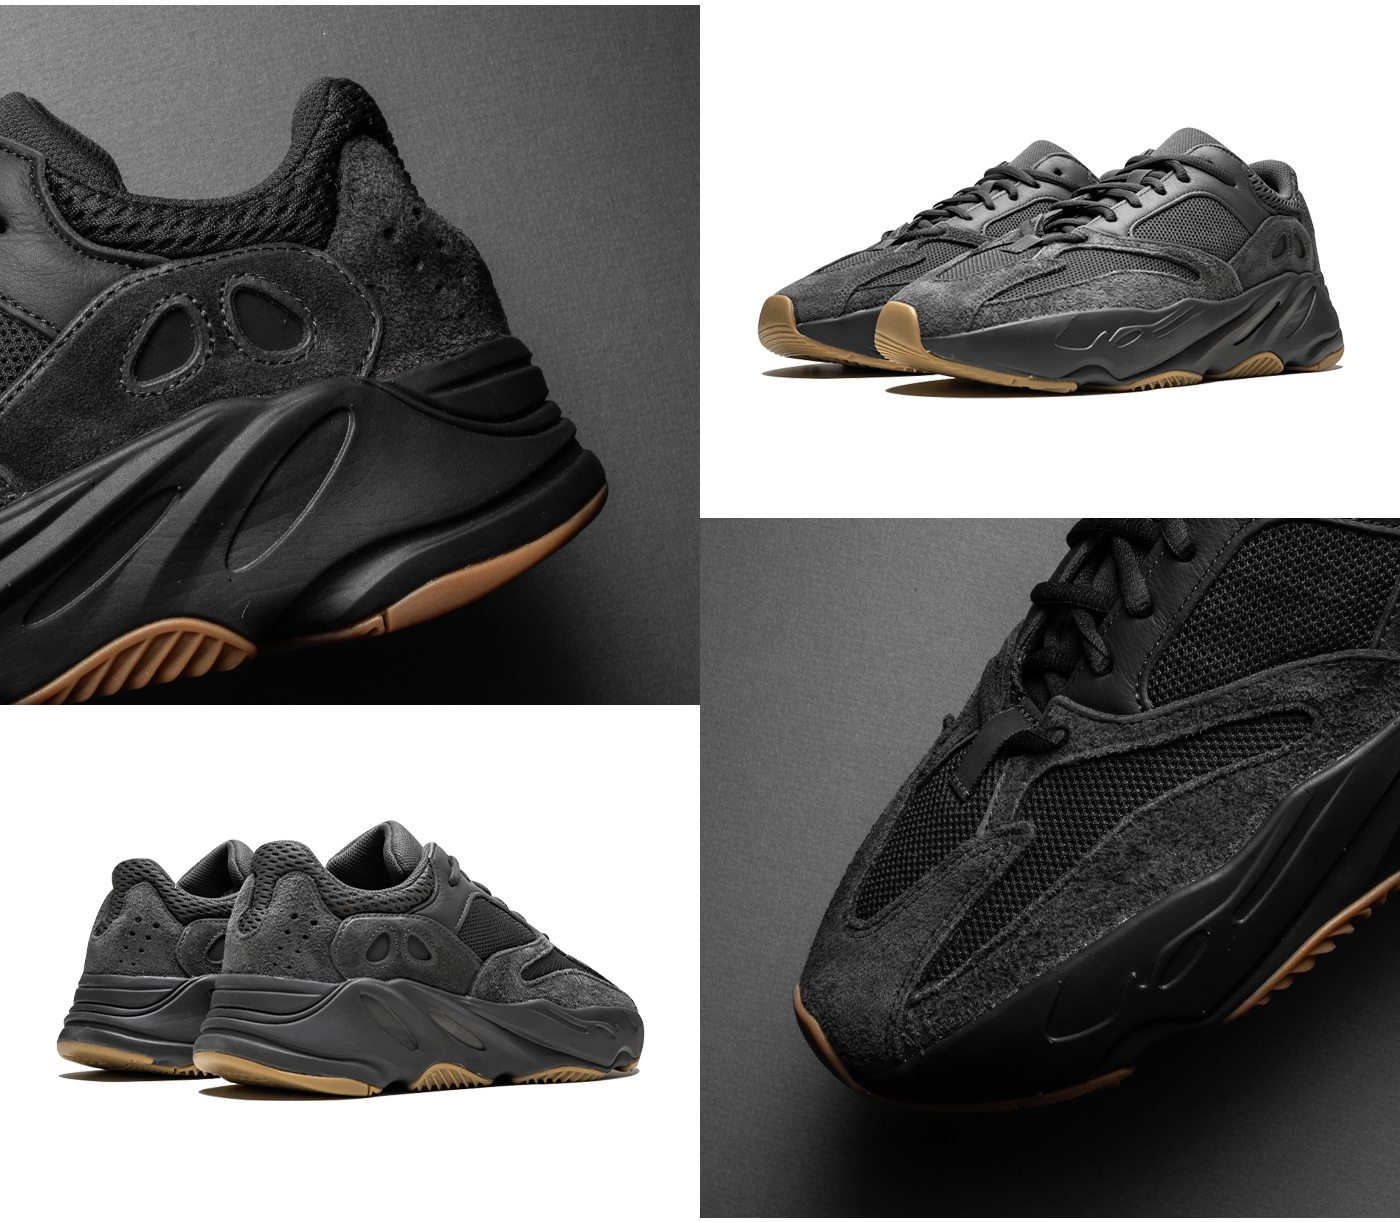 newest 6bec8 a4fa0 Get them first: adidas Yeezy Boost 700